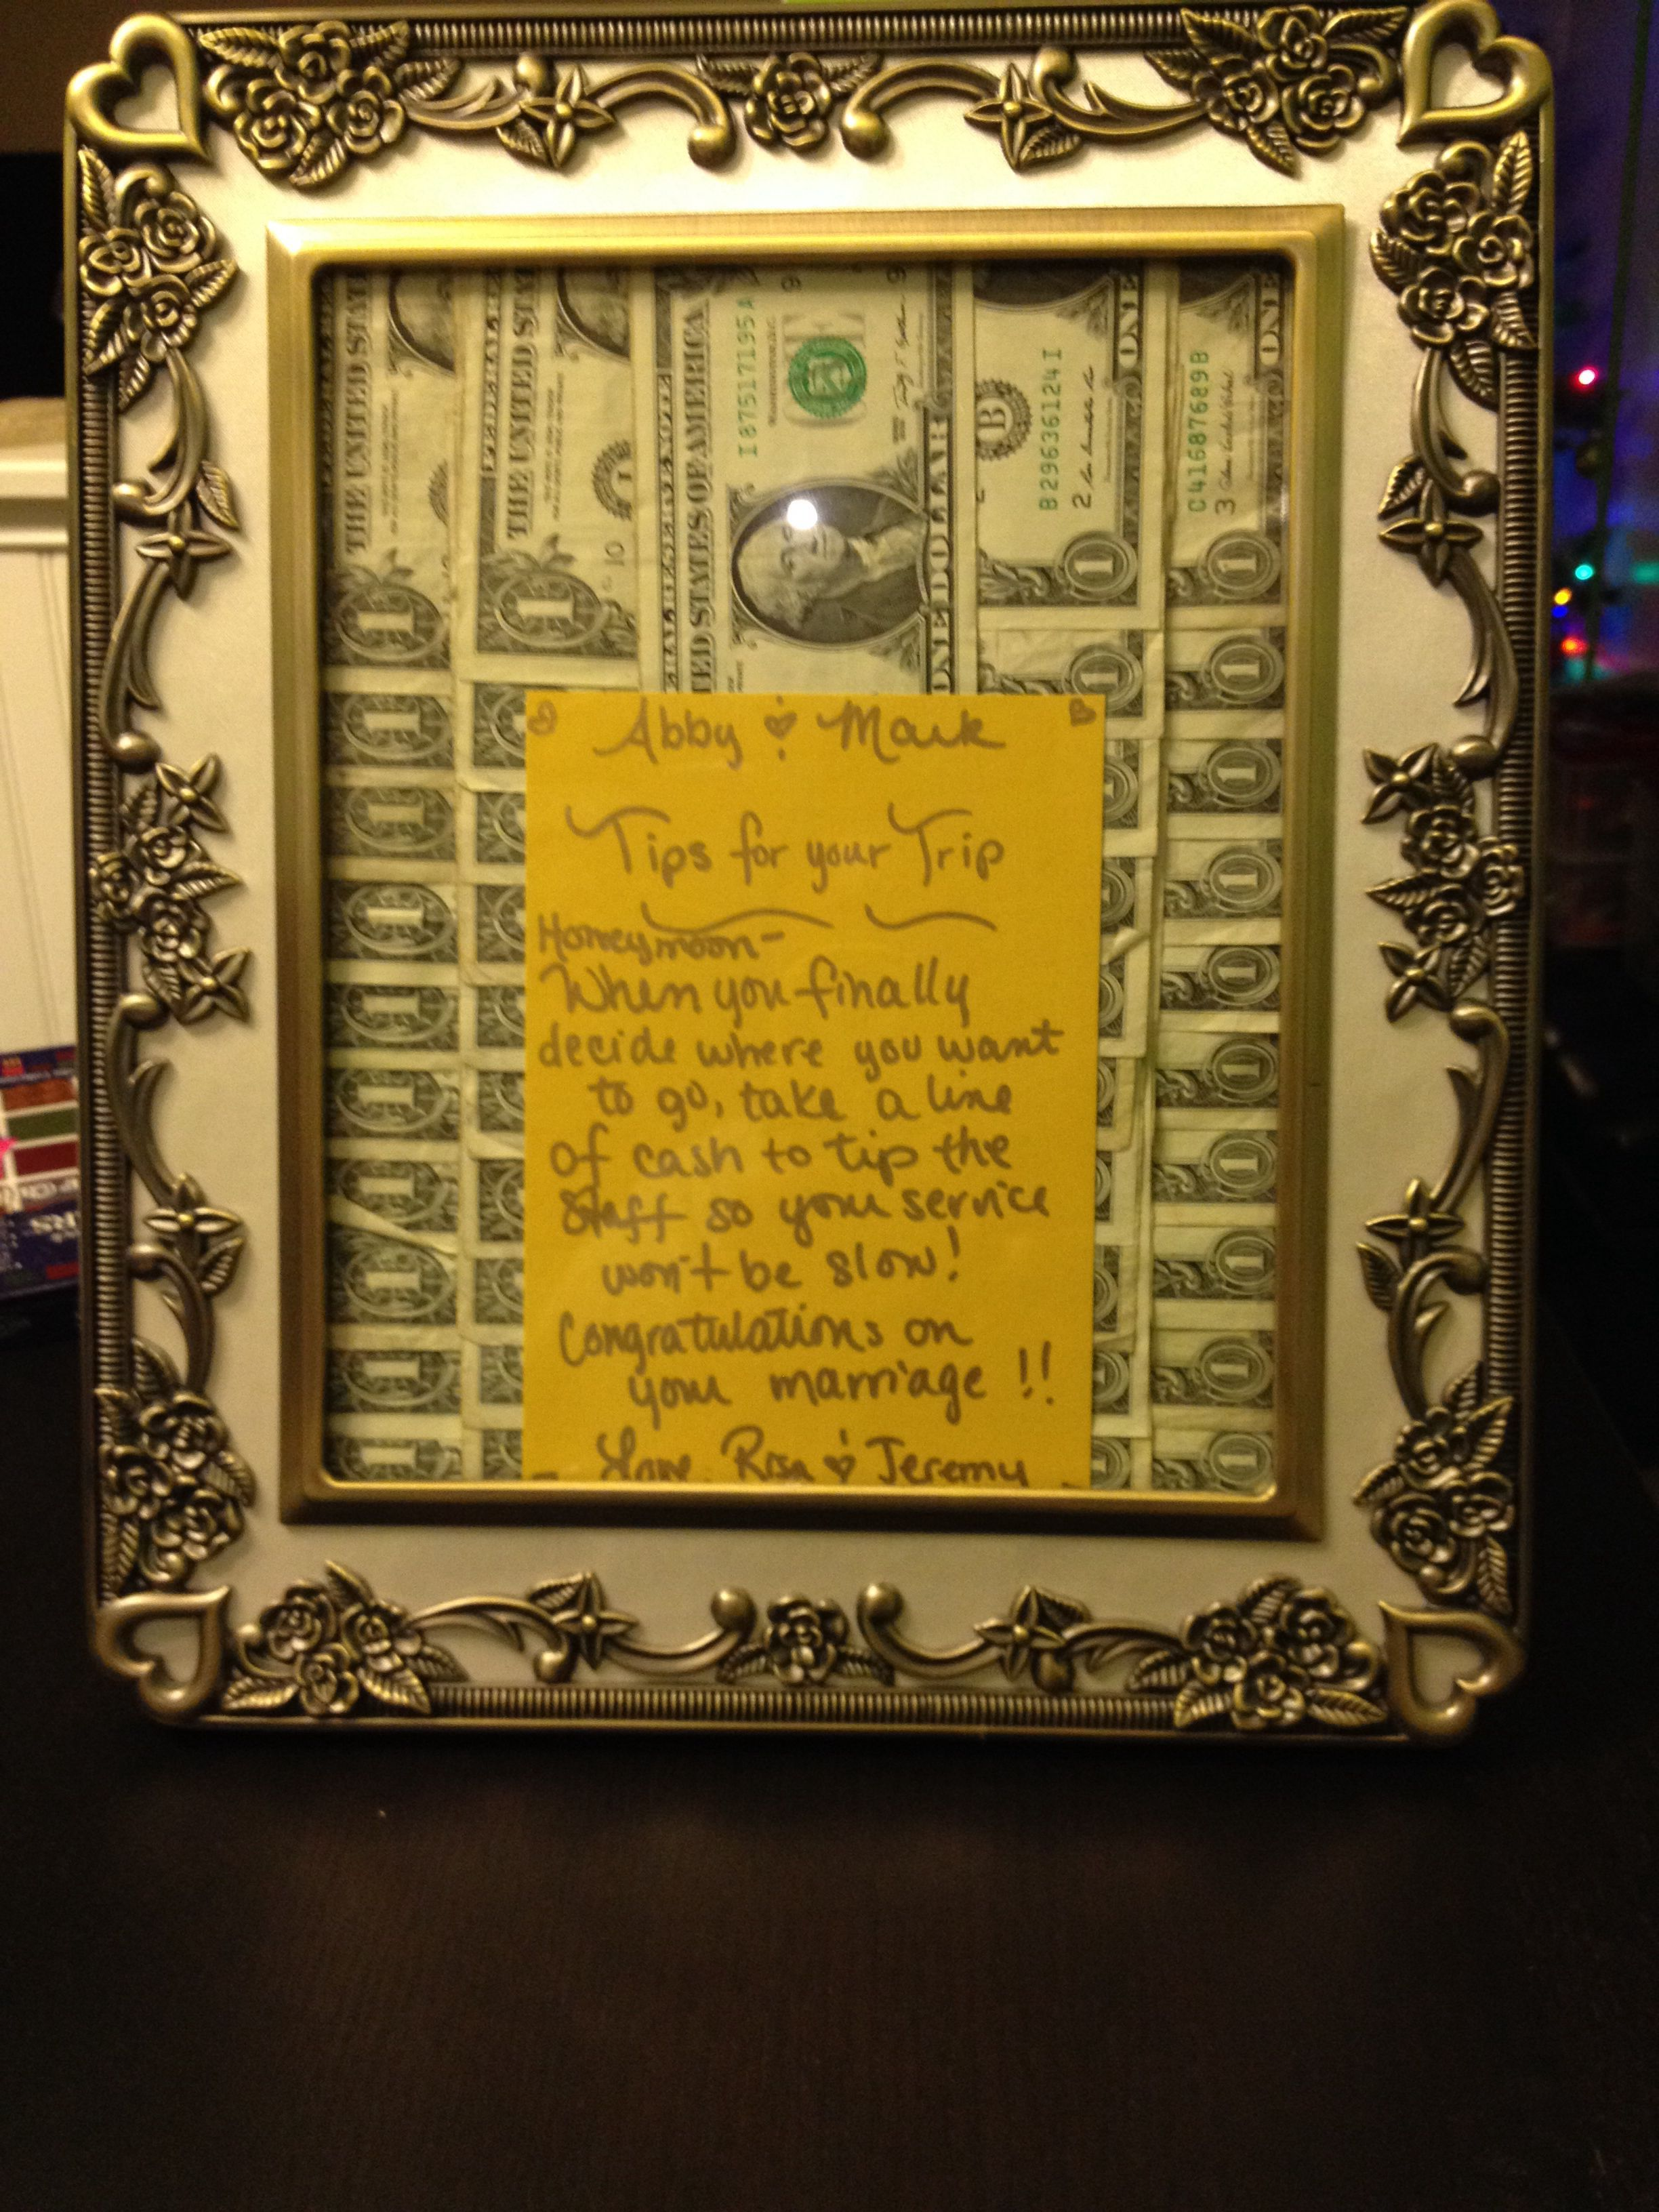 Never got to post this, but great wedding gift idea